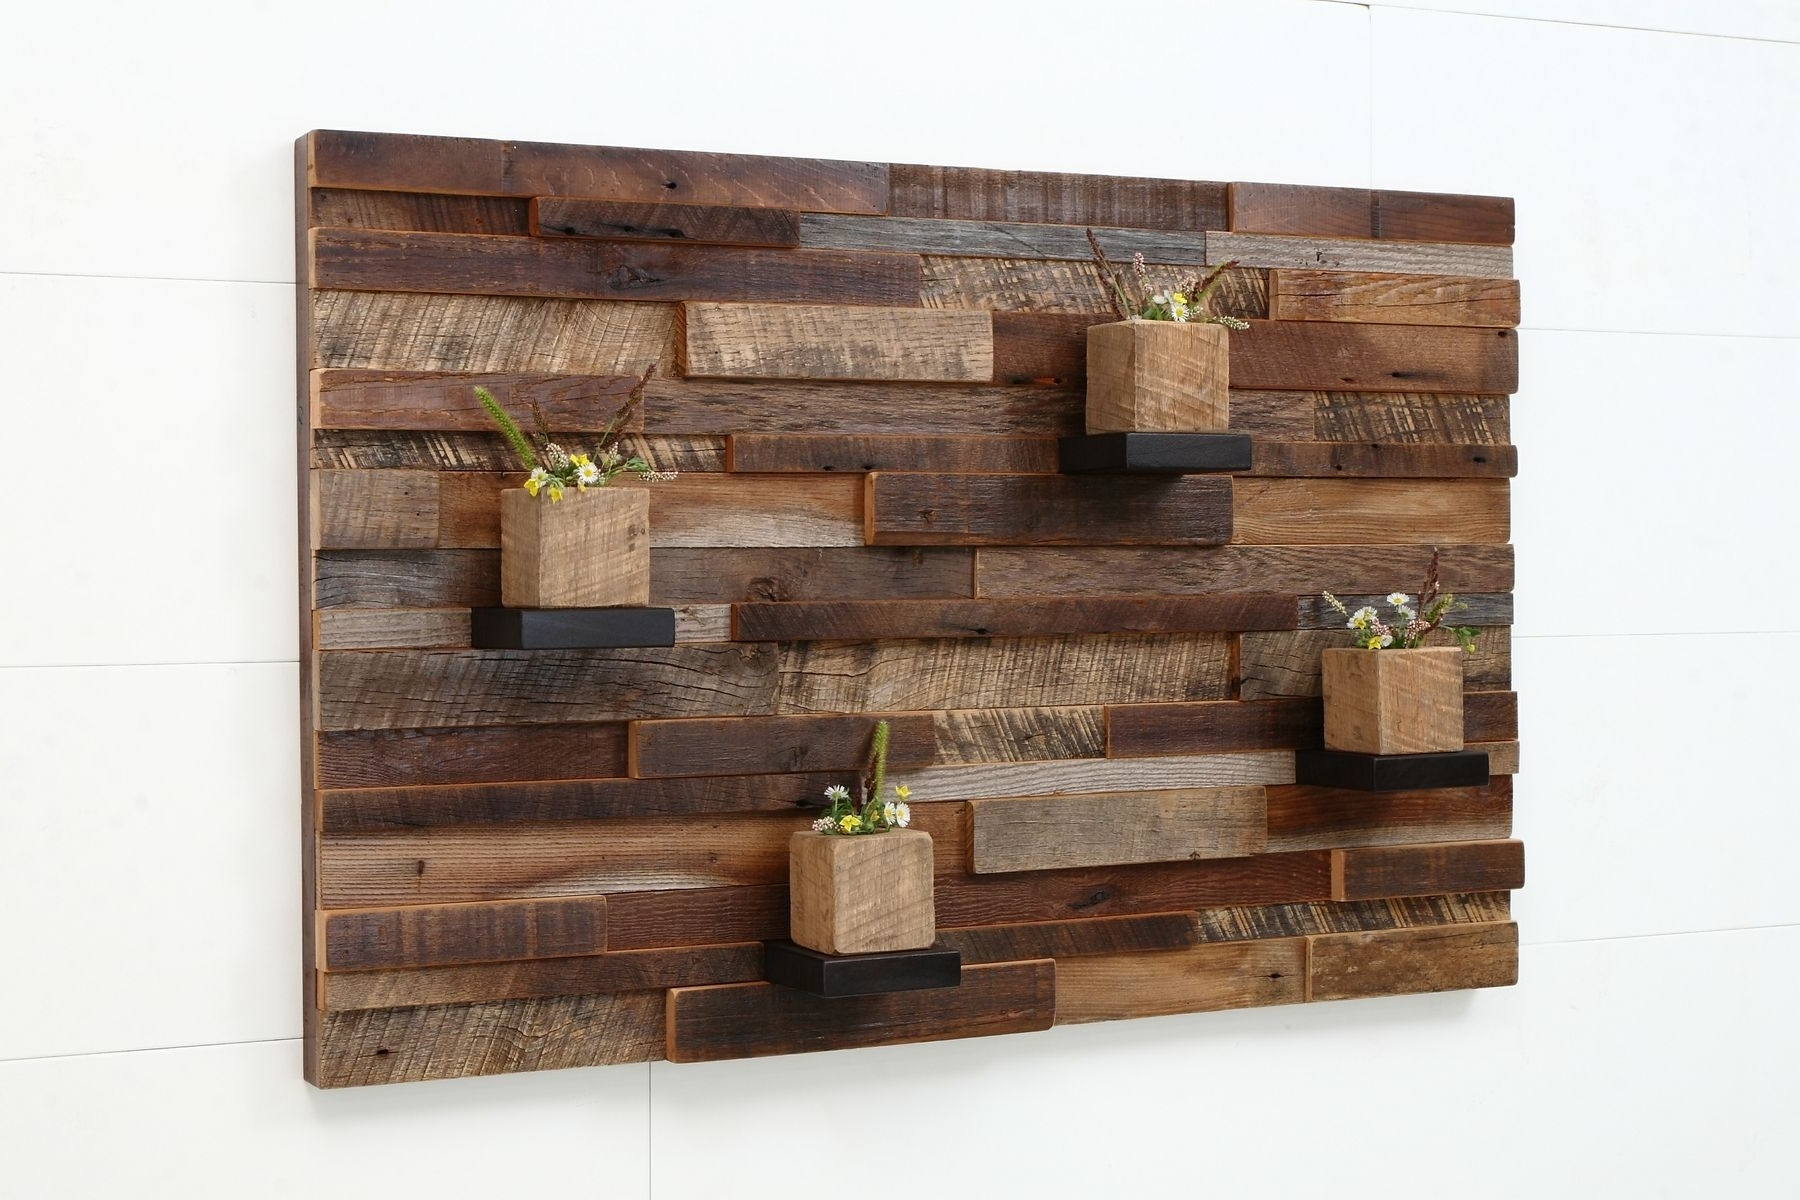 Wooden Wall Art Regarding Most Up To Date Hand Crafted Reclaimed Wood Wall Art Made Of Old Barnwood (View 5 of 15)